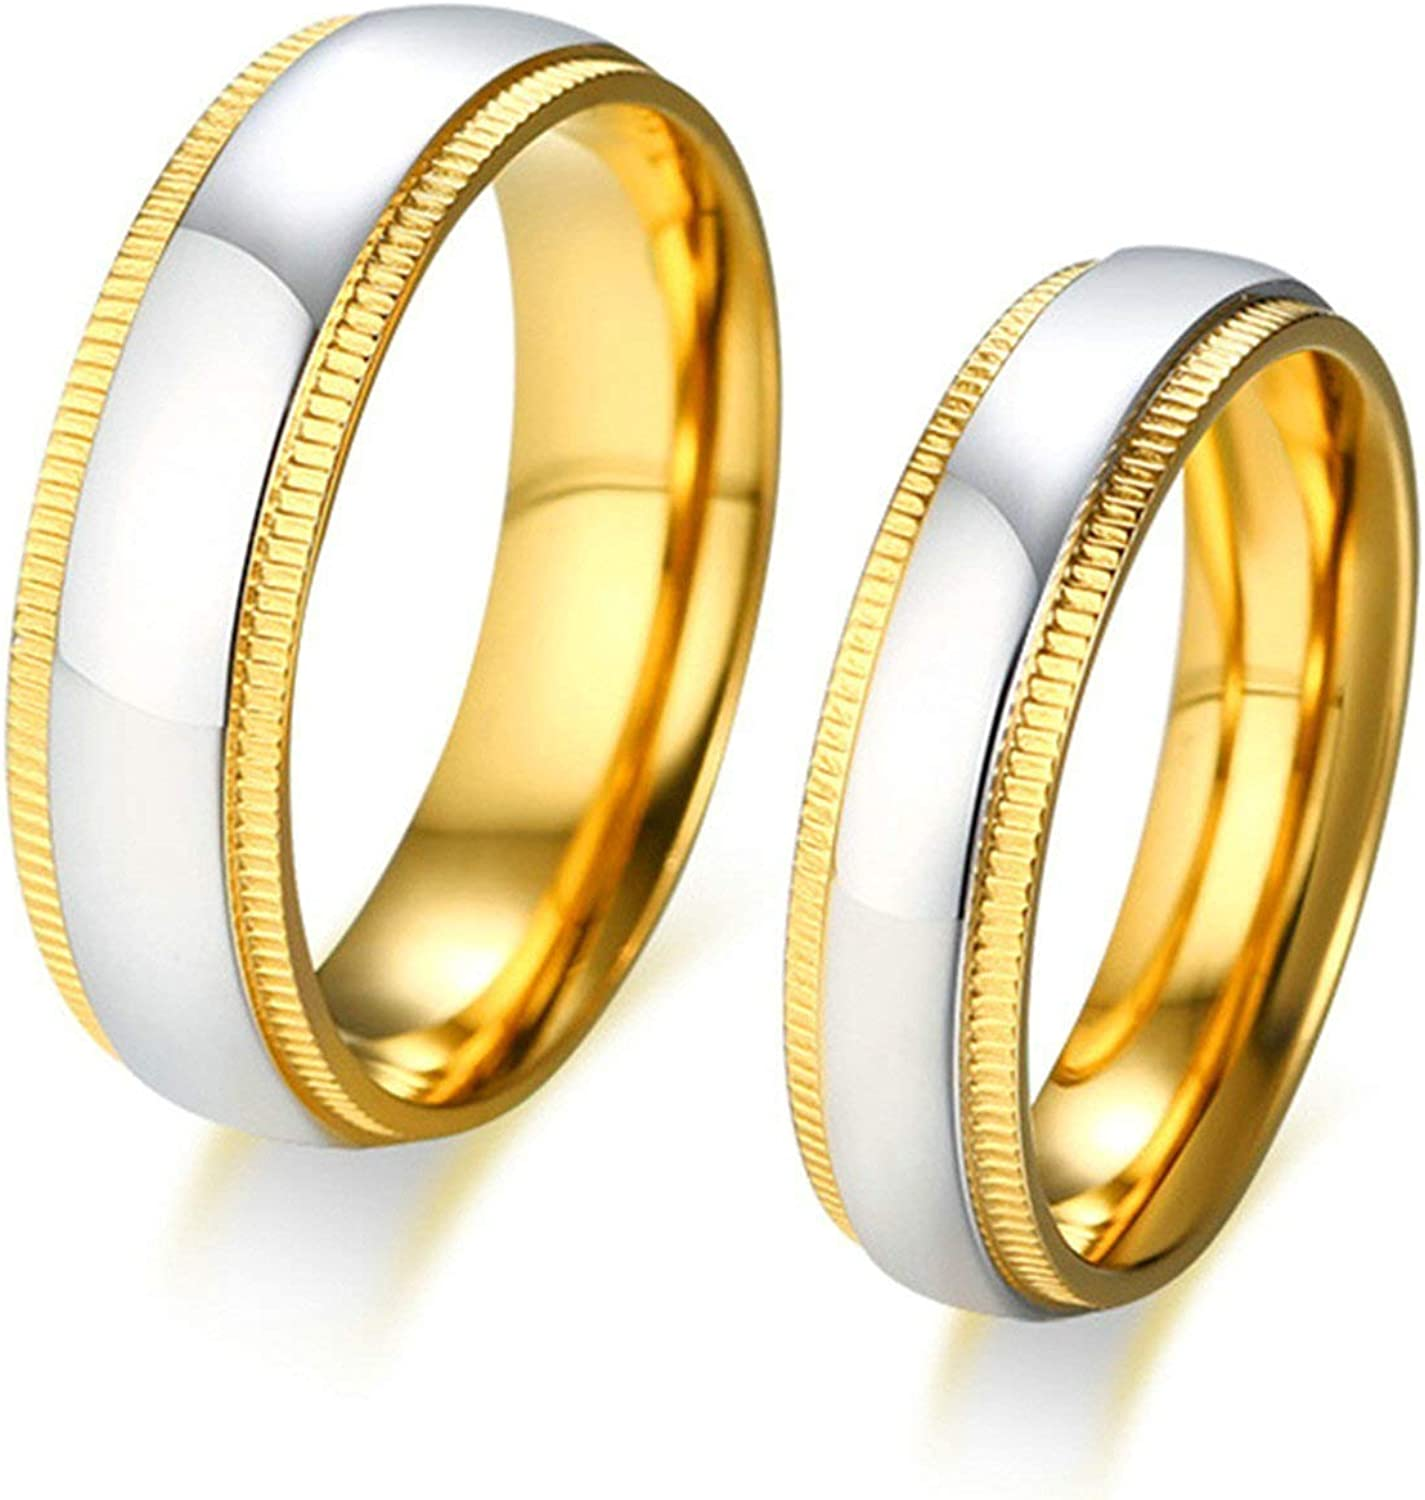 Aooaz Stainless Steel Wedding Bands Embossing Shaped Ring for Women Men Gold//Silver US Size 10